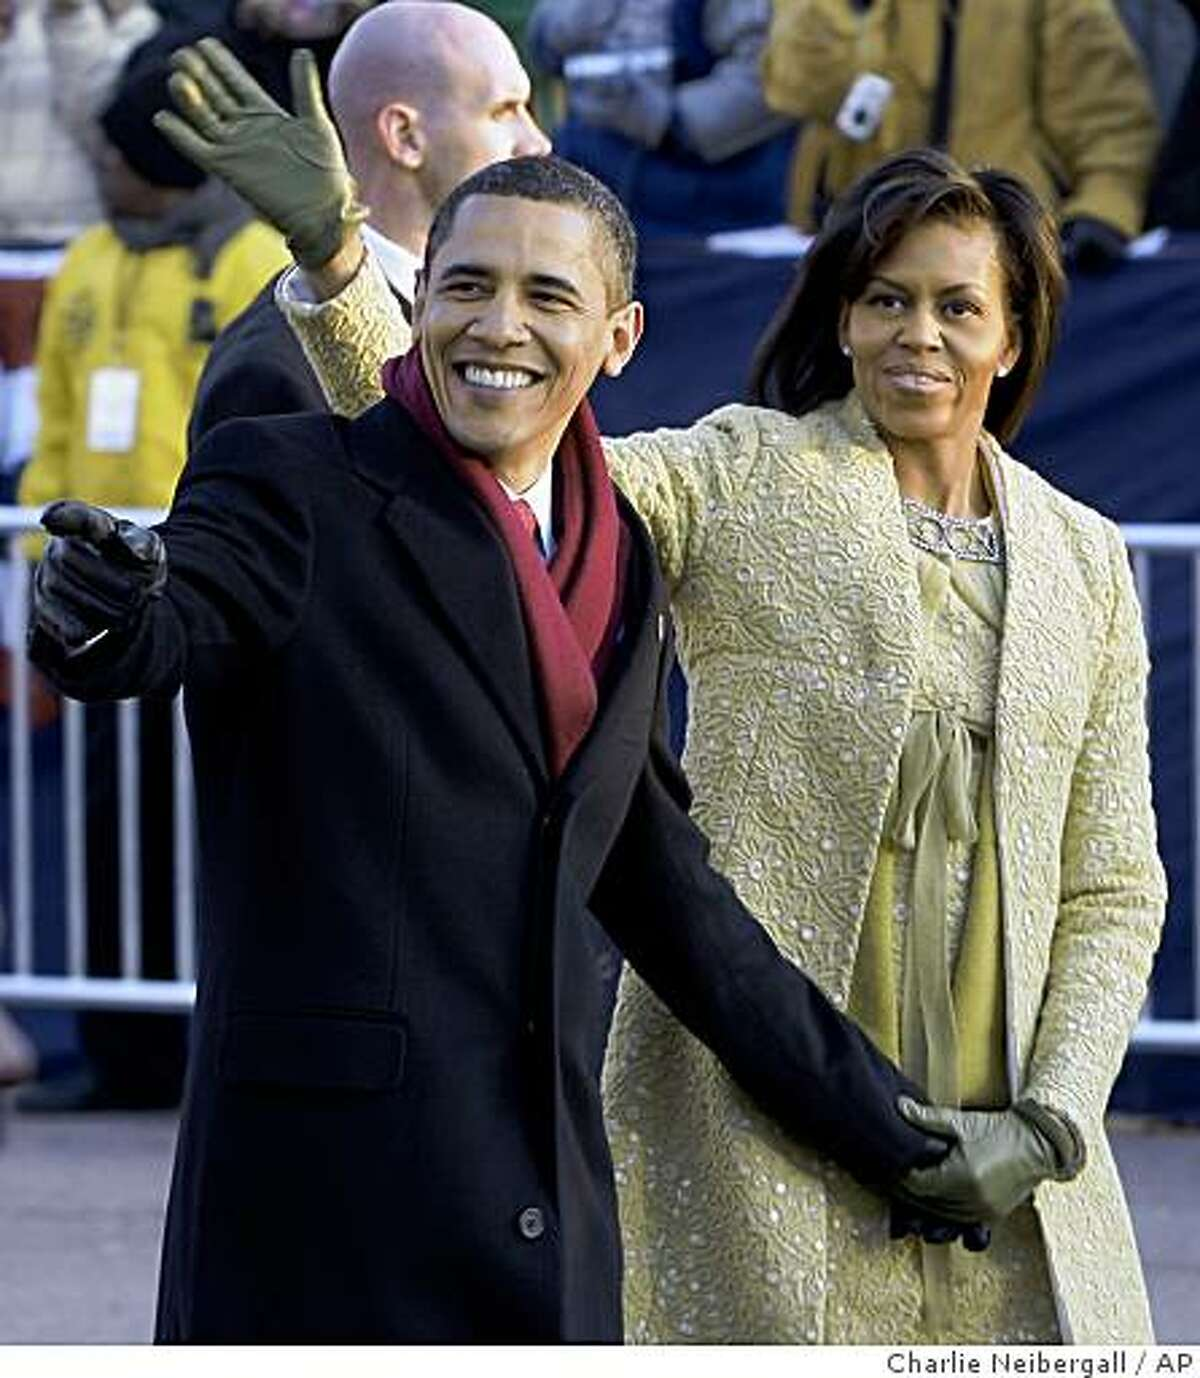 President Barack Obama and his wife Michelle walk on Pennsylvania Avenue near the White House in Washington, Tuesday, Jan. 20, 2009, during his inaugural parade.